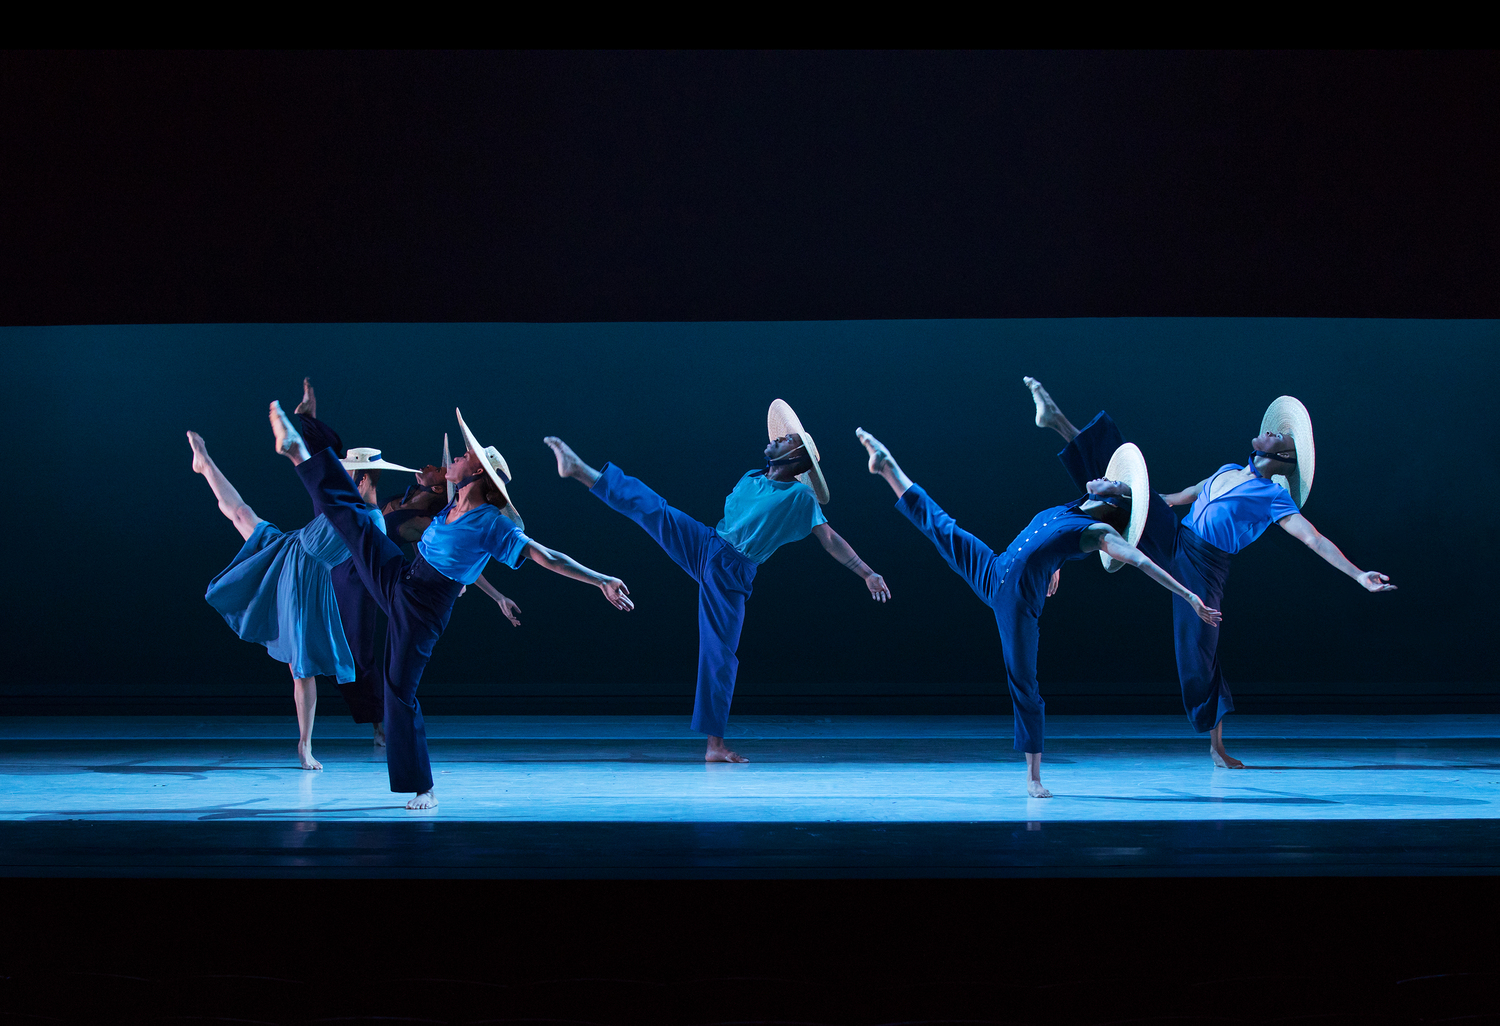 BWW Review: ALVIN AILEY AMERICAN DANCE THEATER SUMMER 2018 ENGAGEMENT IN NEW YORK CITY at Lincoln Center